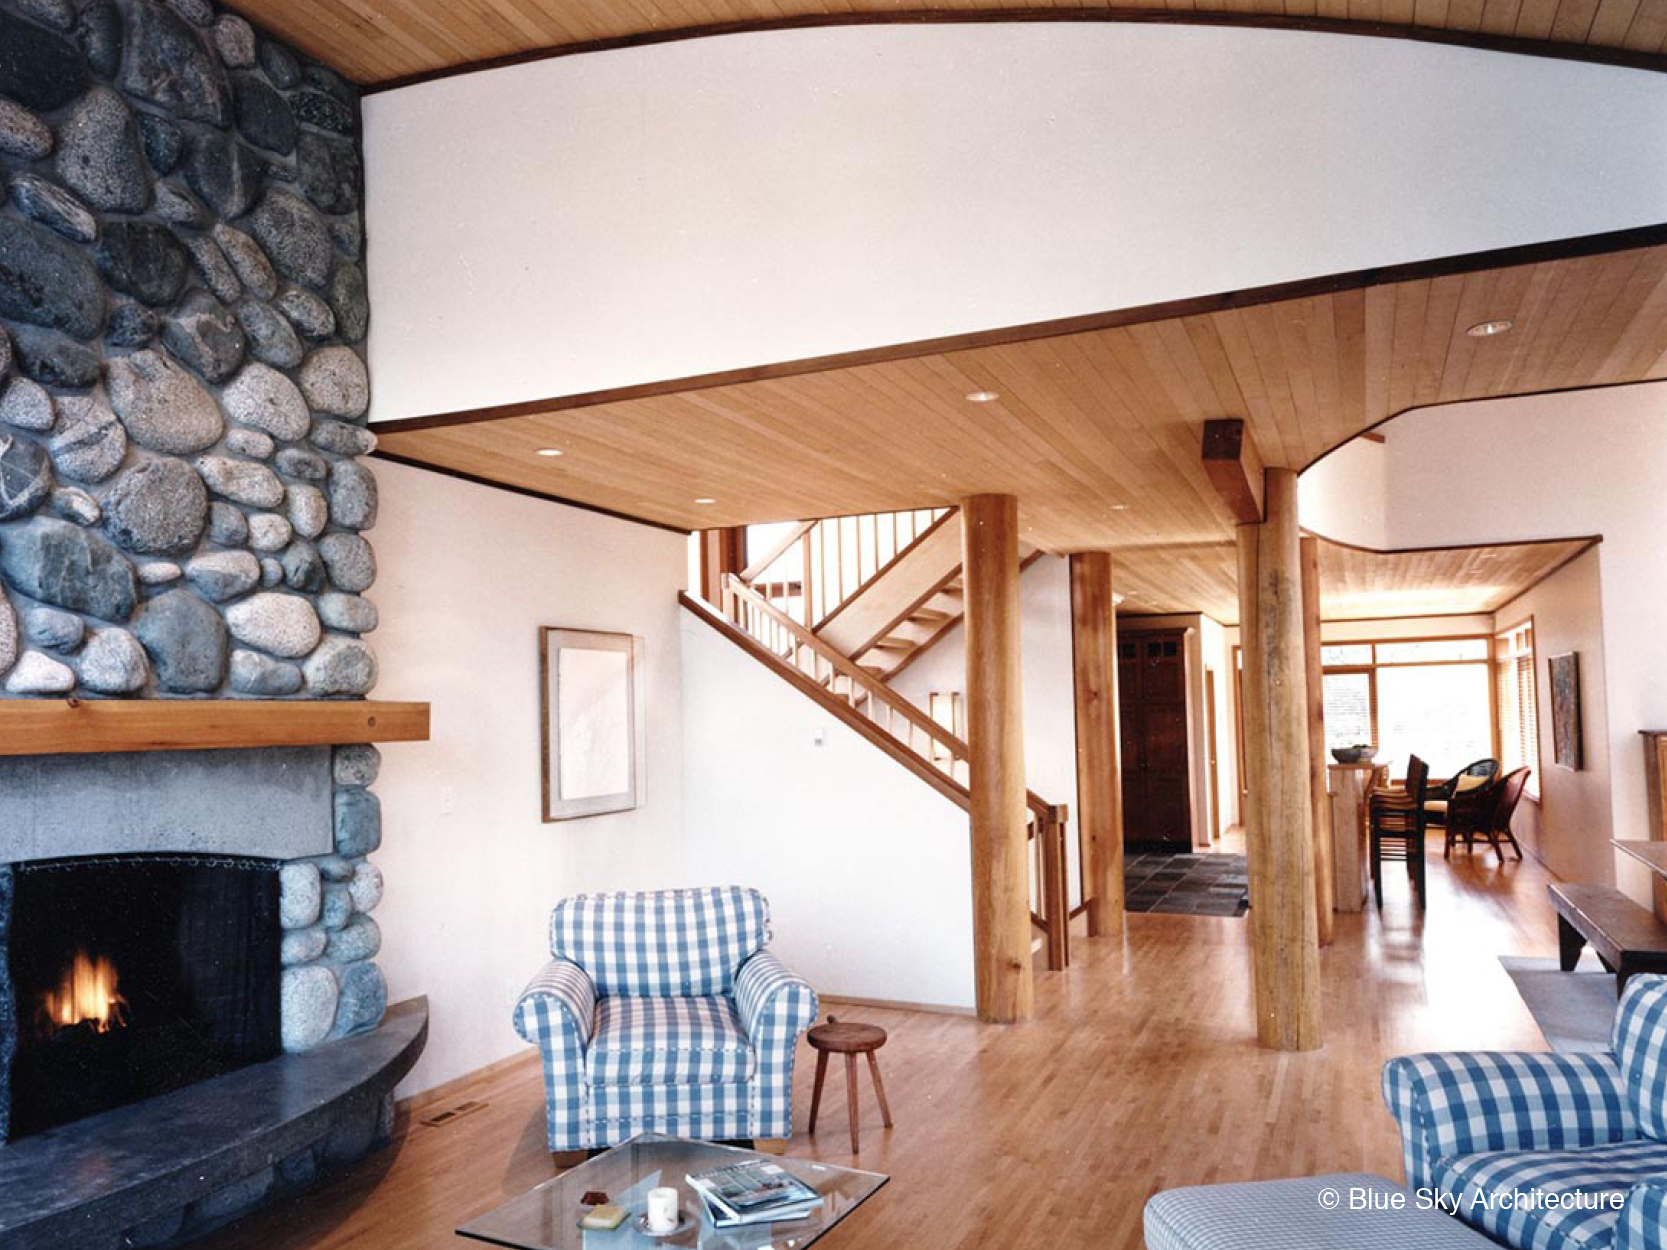 Open Plan Living Room with Stone Fireplace and Natural Materials